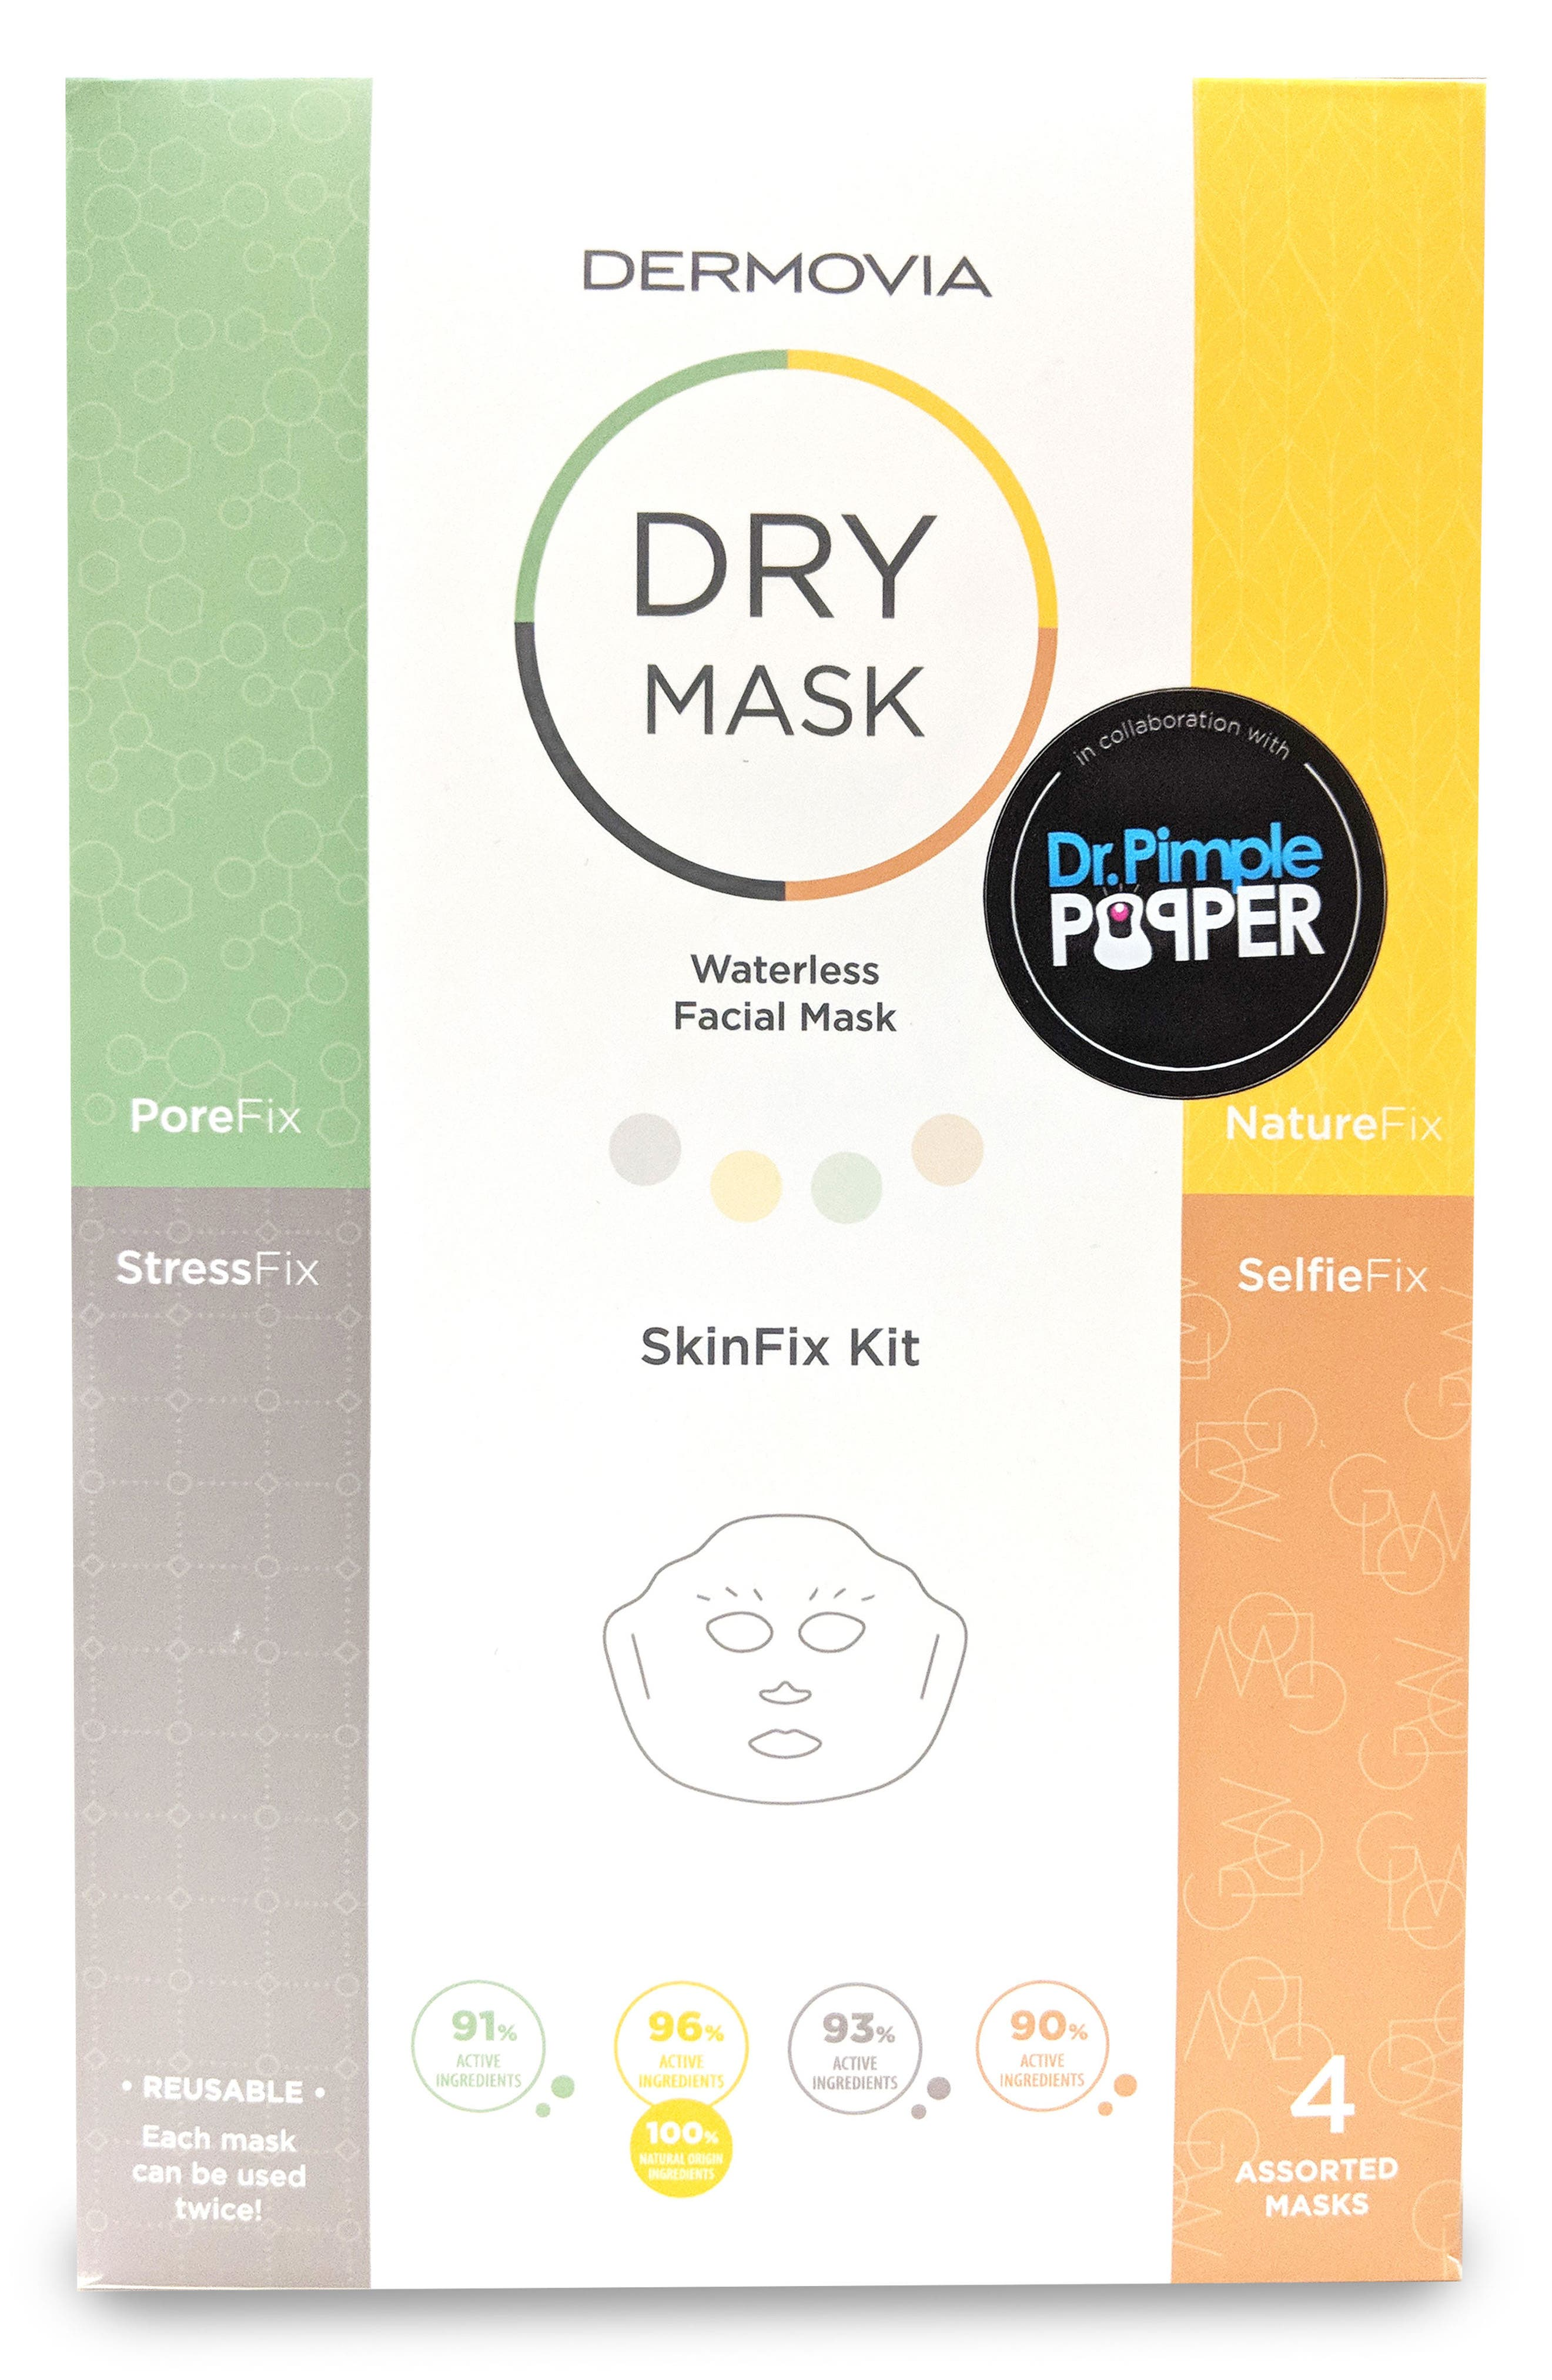 x Dr. Pimple Popper DRY Mask Waterless Facial Mask SkinFix Kit,                         Main,                         color, 000